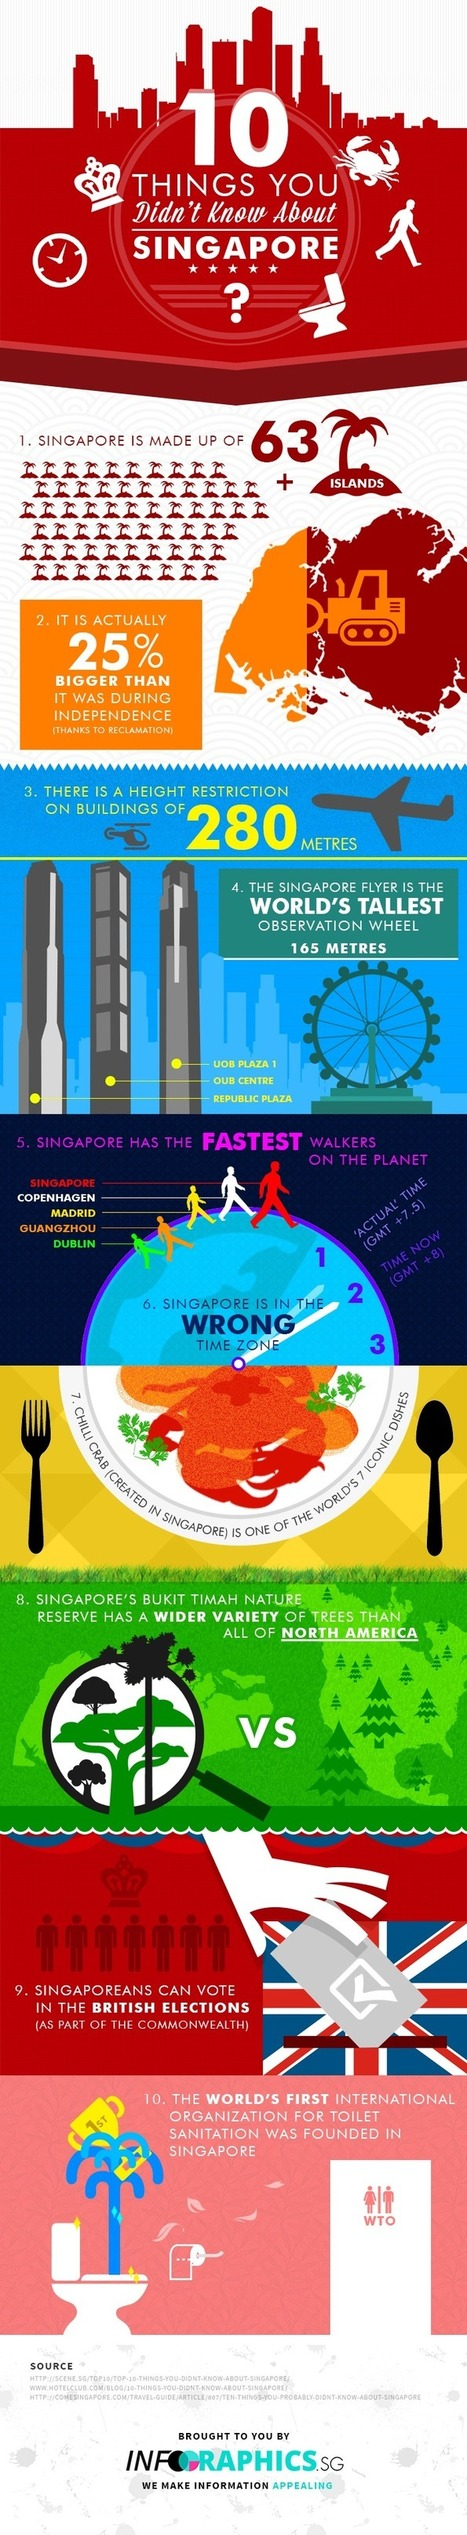 10 Things You Didn't Know About Singapore #infographic - Gold & Fabulous | Digital and Social Media Marketing | Scoop.it